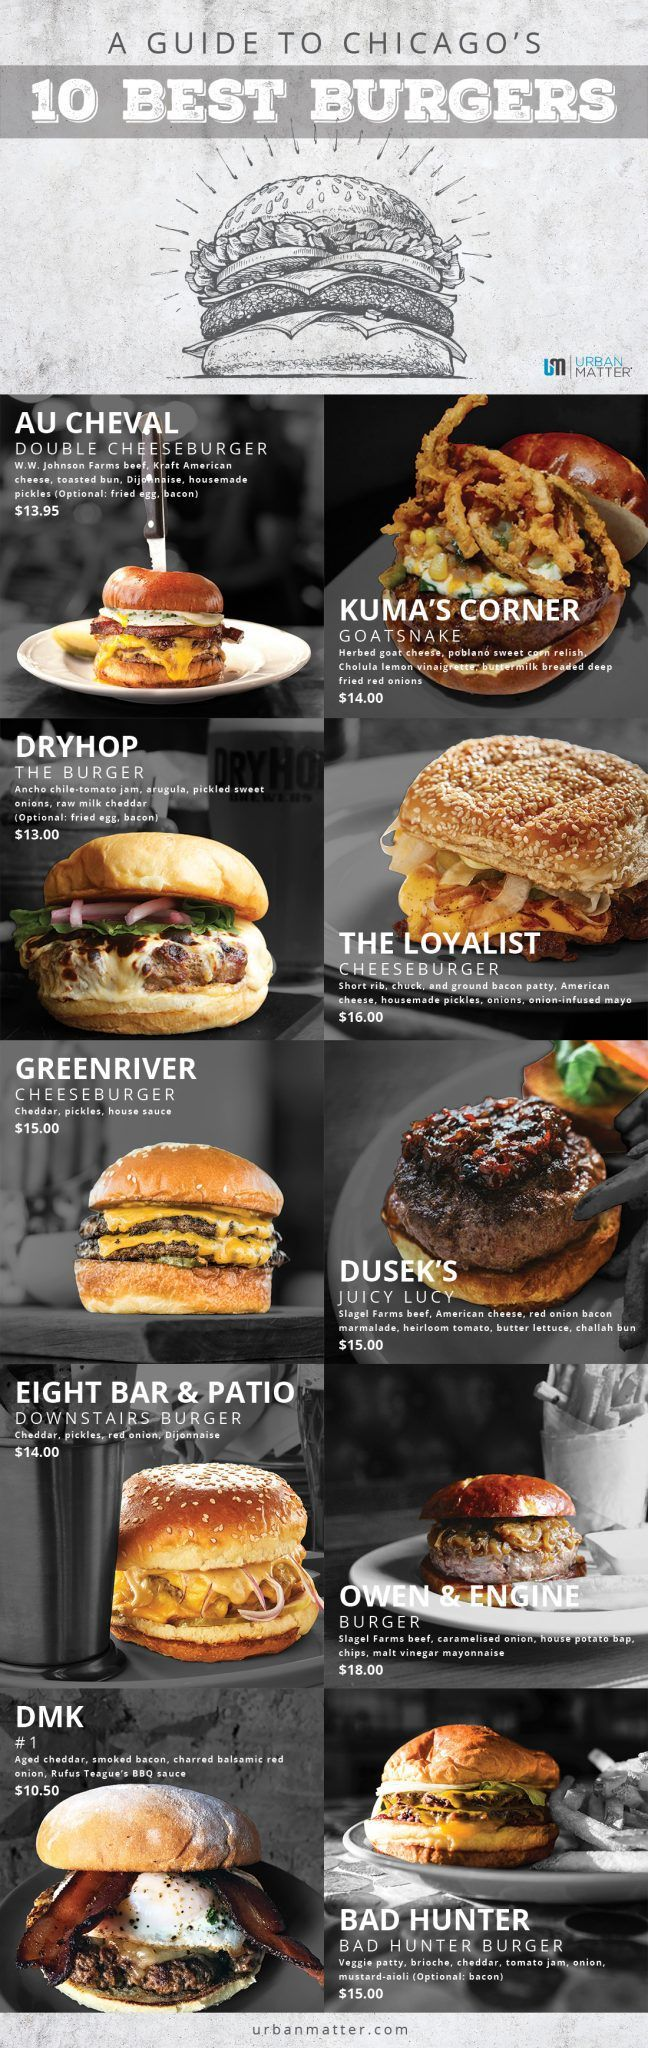 WARNING: This post contains graphic images of painfully delicious burgers. May induce involuntary salivating, stomach growling, and in some cases arousal.